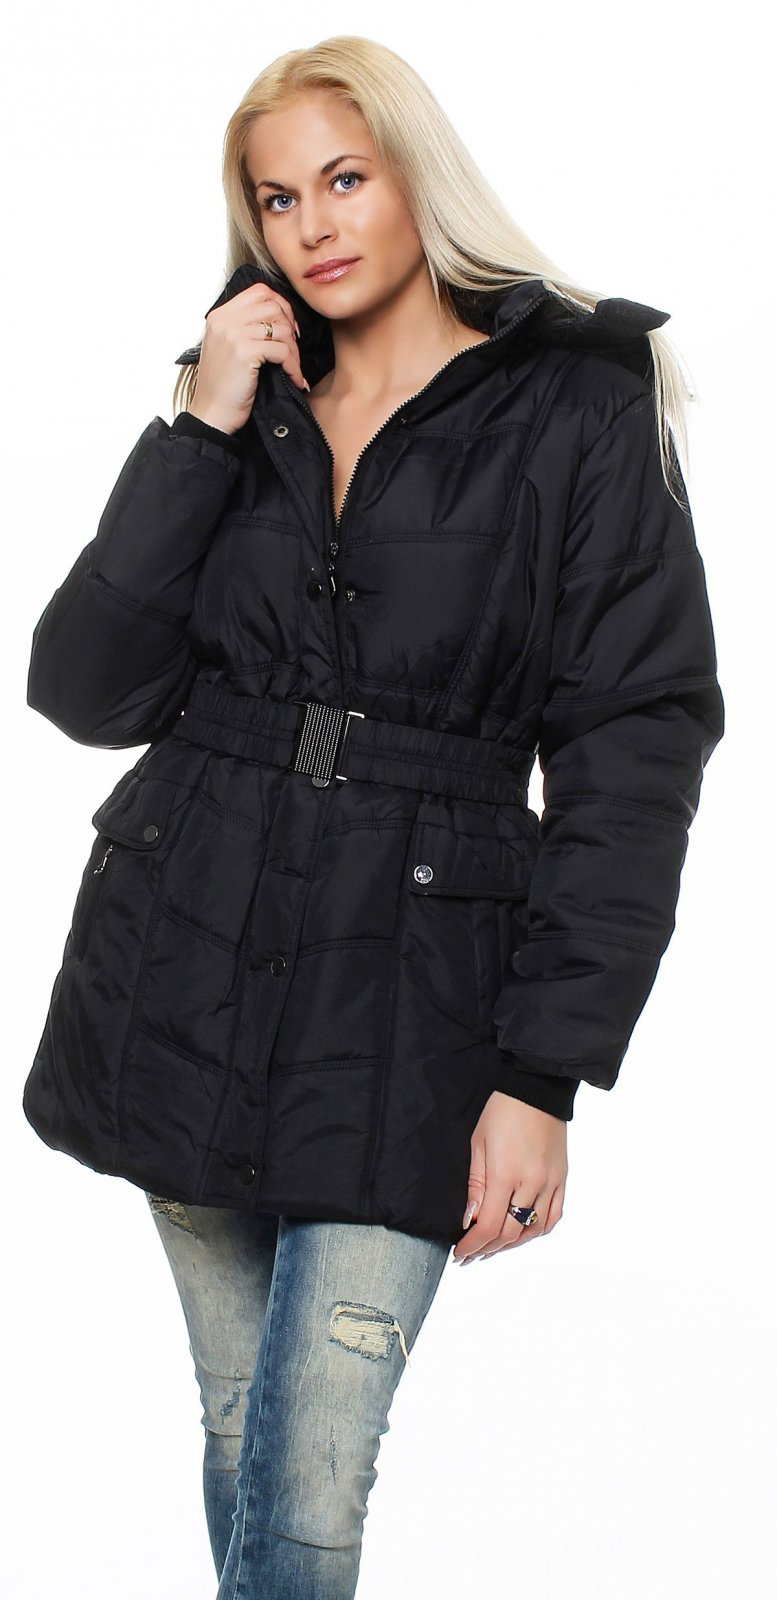 damen jacke parka bergangsjacke winterjacke wintermantel gef ttert gesteppt ebay. Black Bedroom Furniture Sets. Home Design Ideas